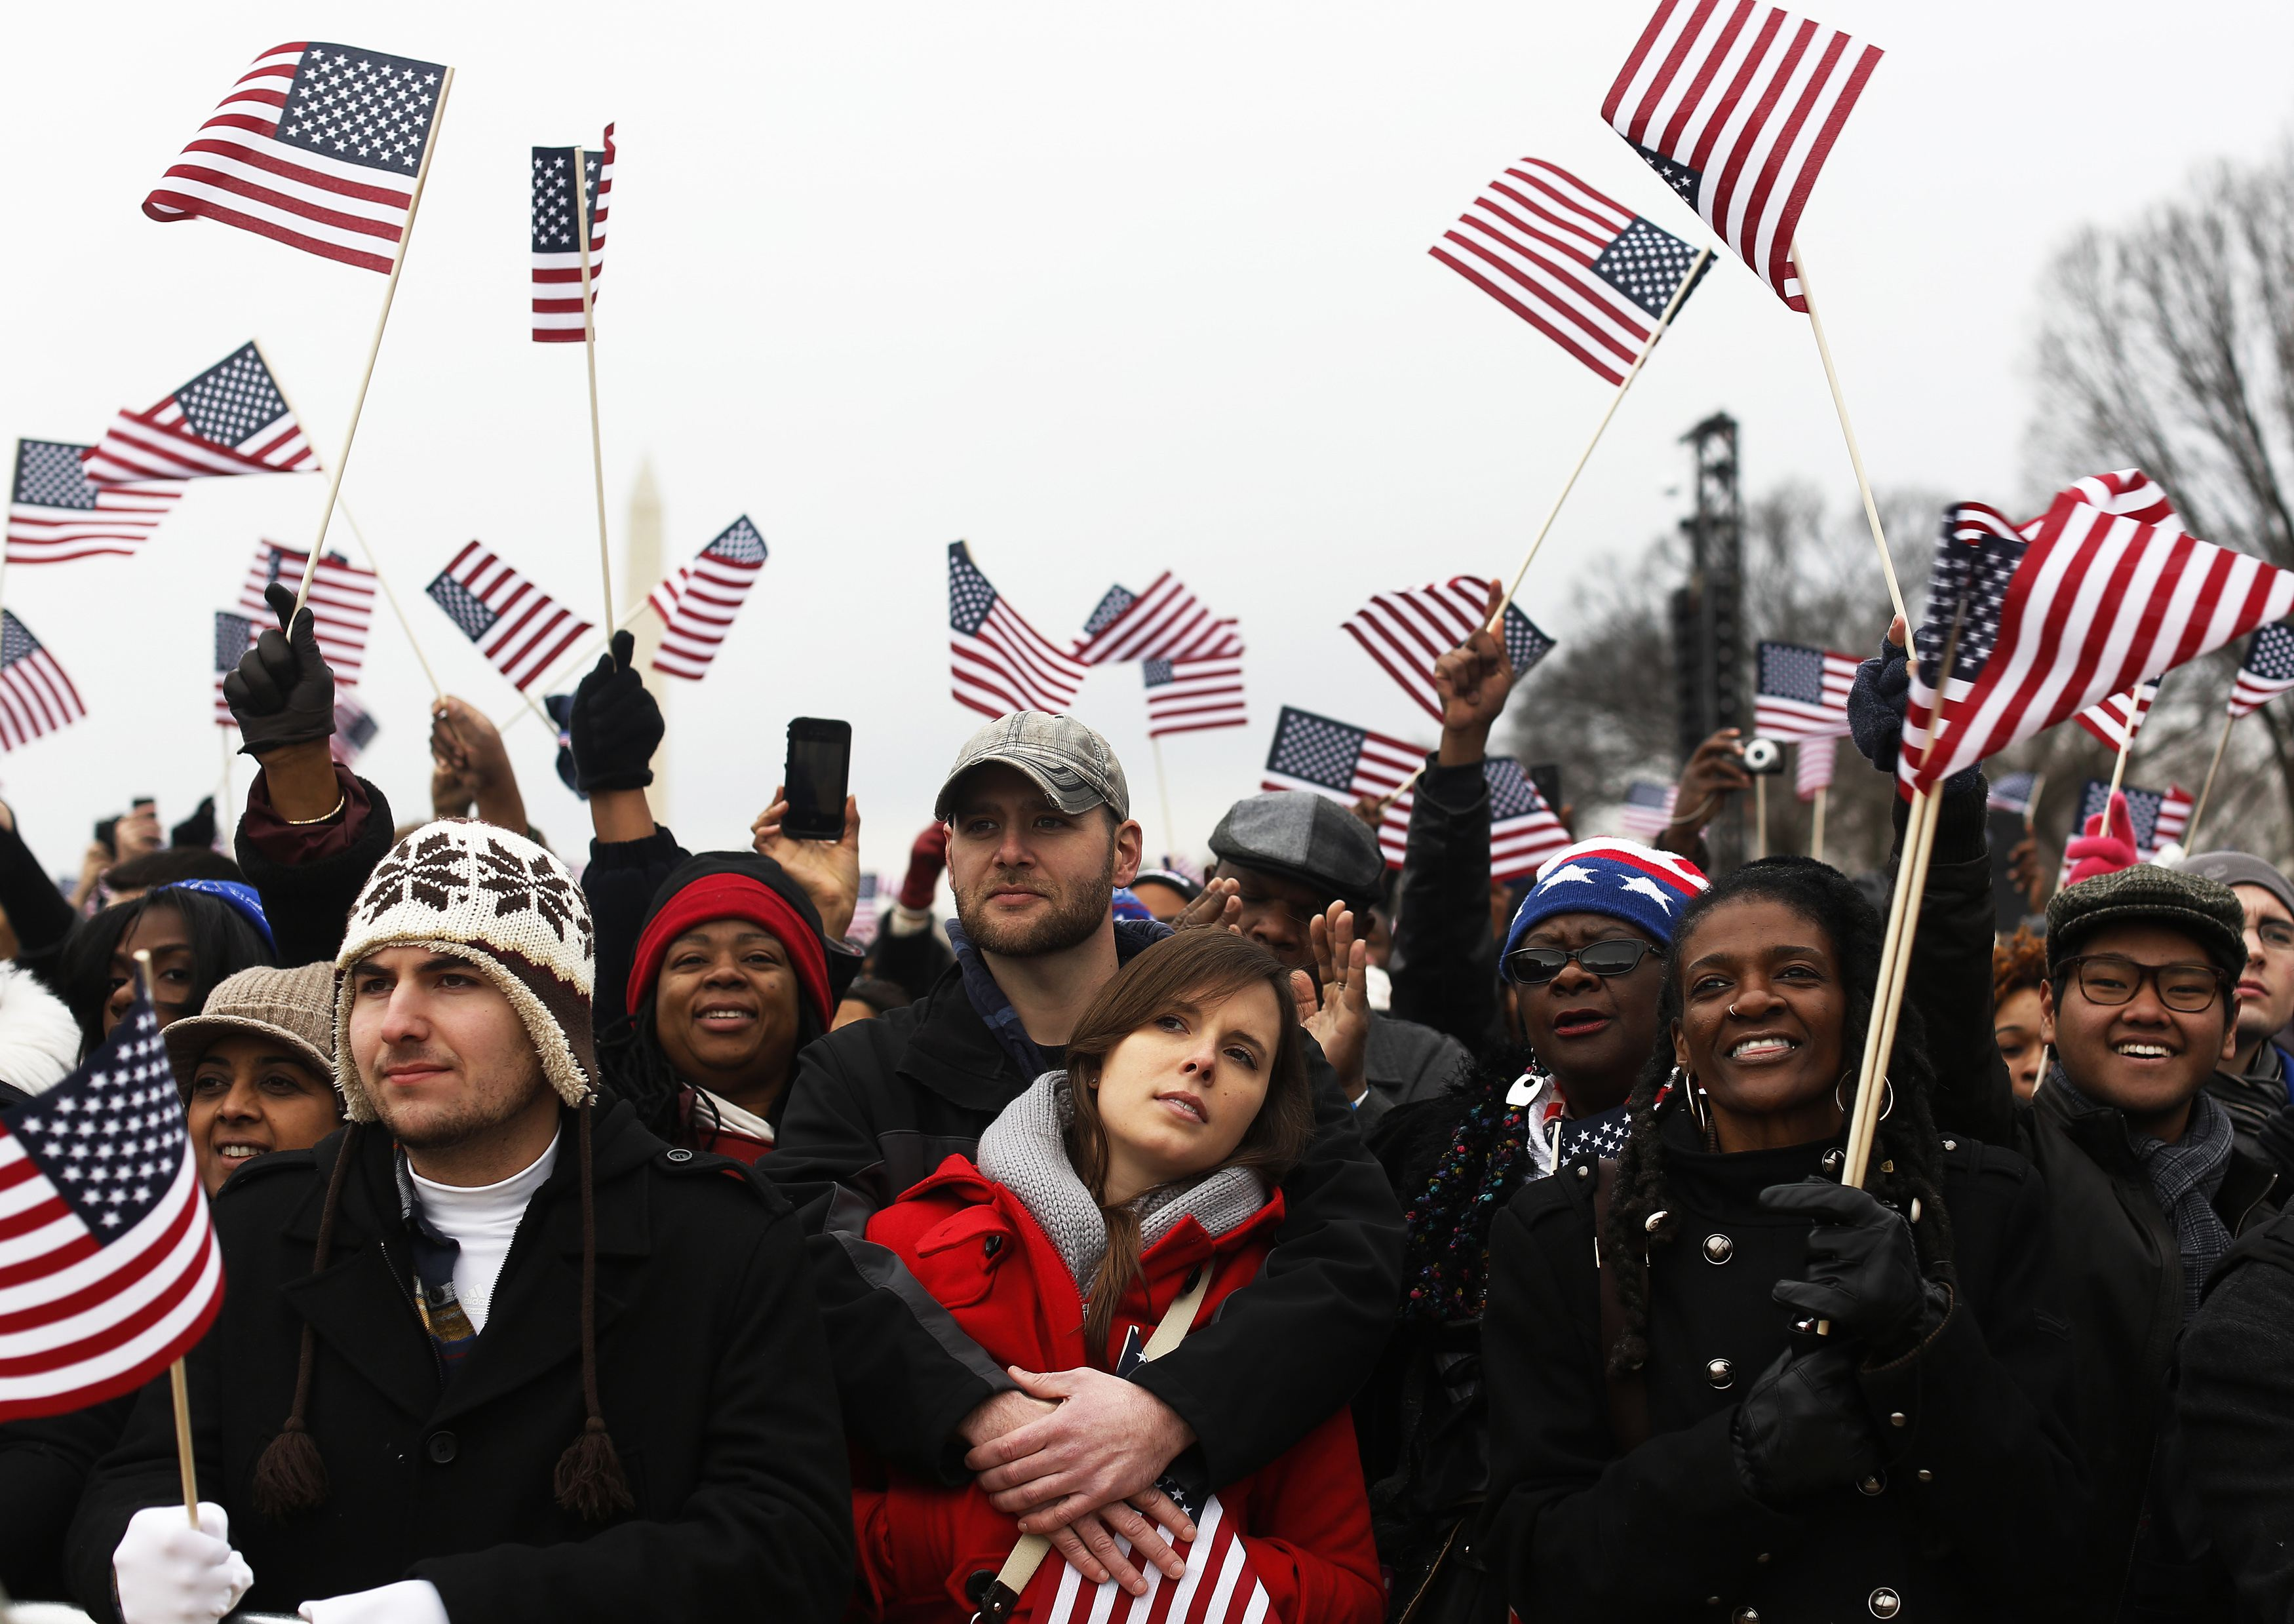 People cheer on the National Mall during the ceremonial swearing-in ceremonies on the West front of the U.S. Capitol in Washington